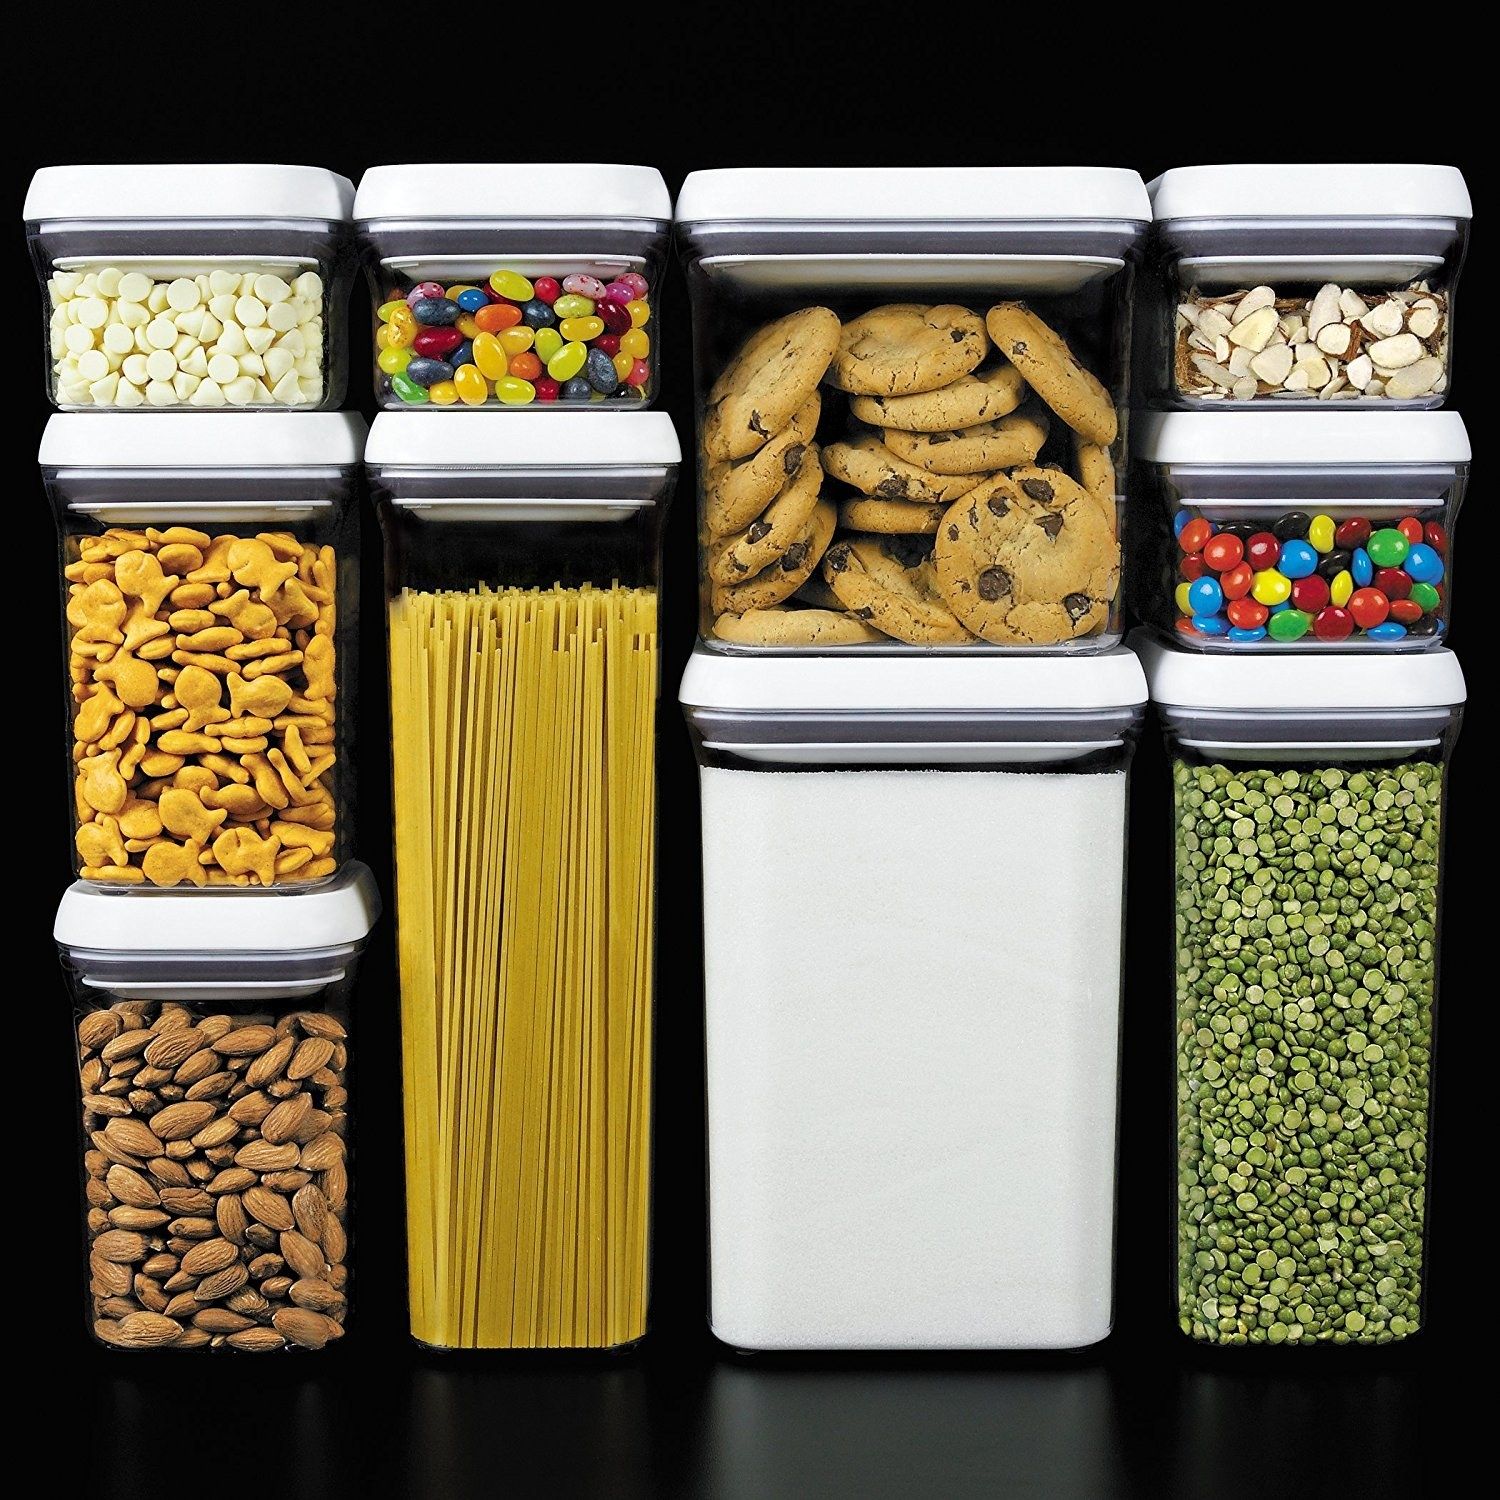 10-piece set of clear storage containers